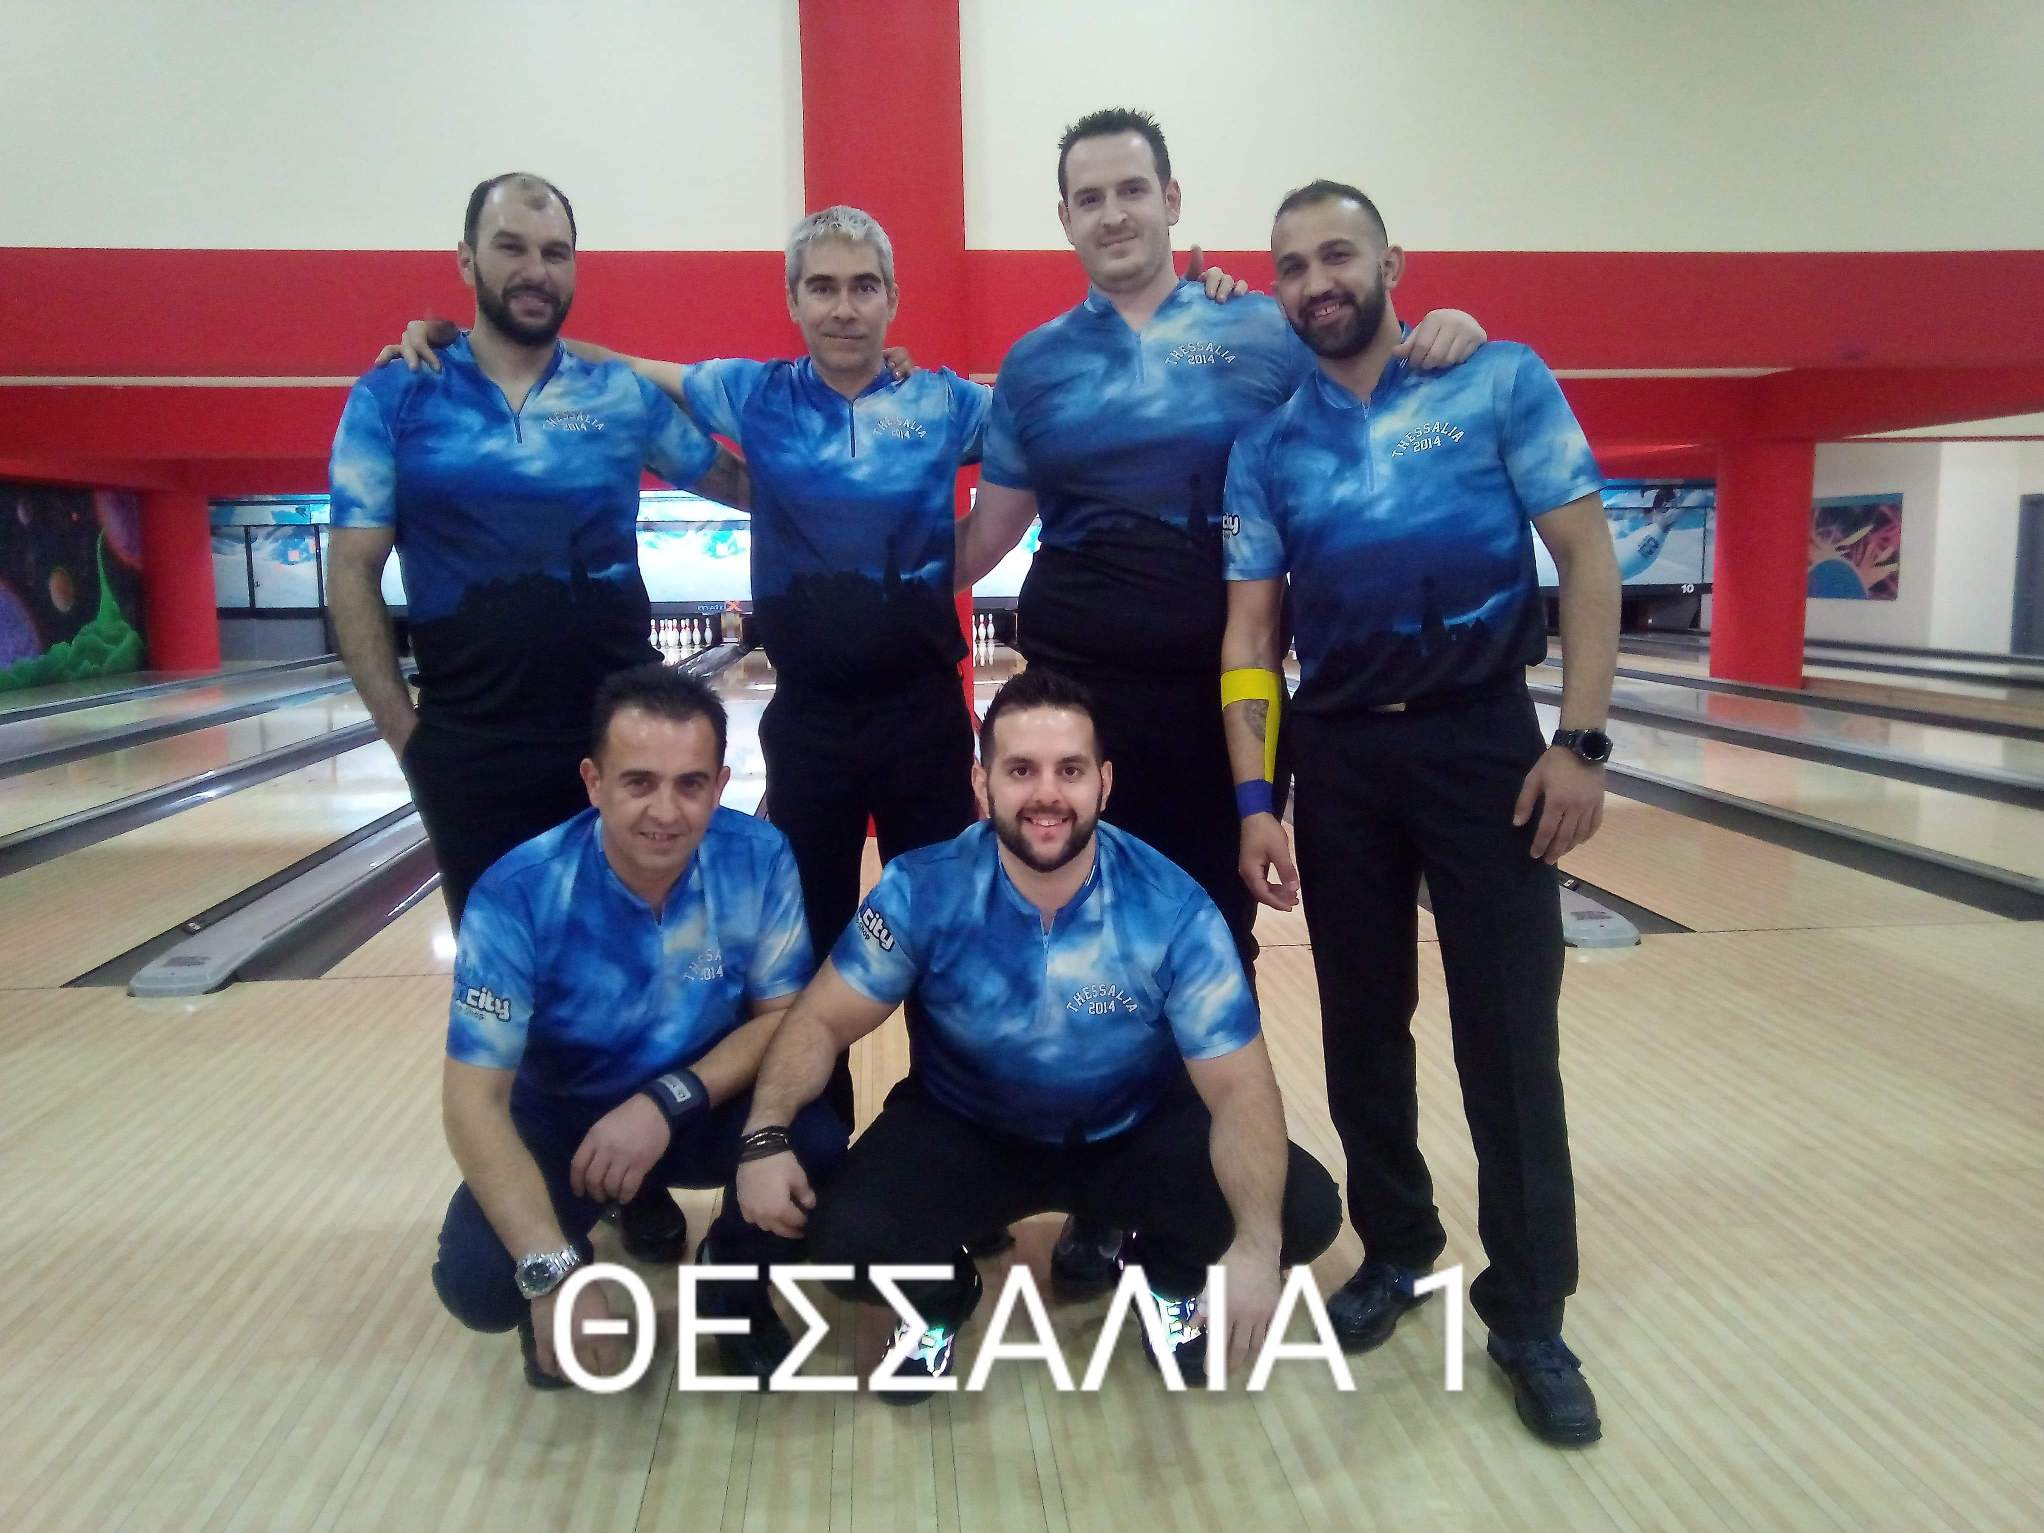 bowling-prokr-omad-2019-2020_2